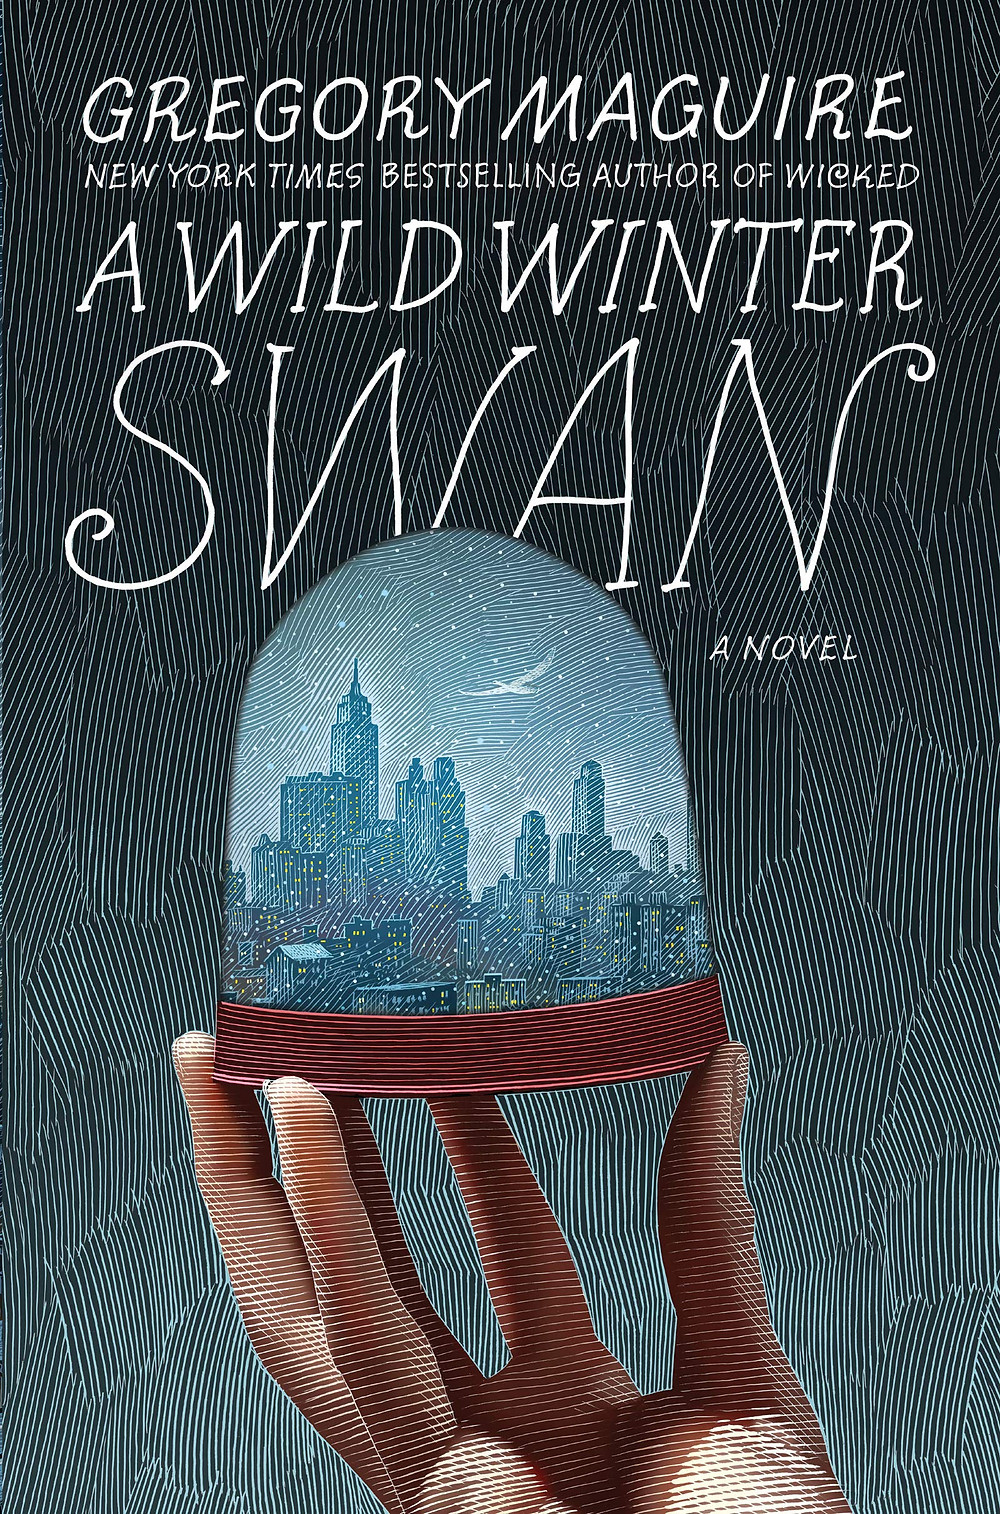 Book cover of A Wild Winter Swan by Gregory Maguire.